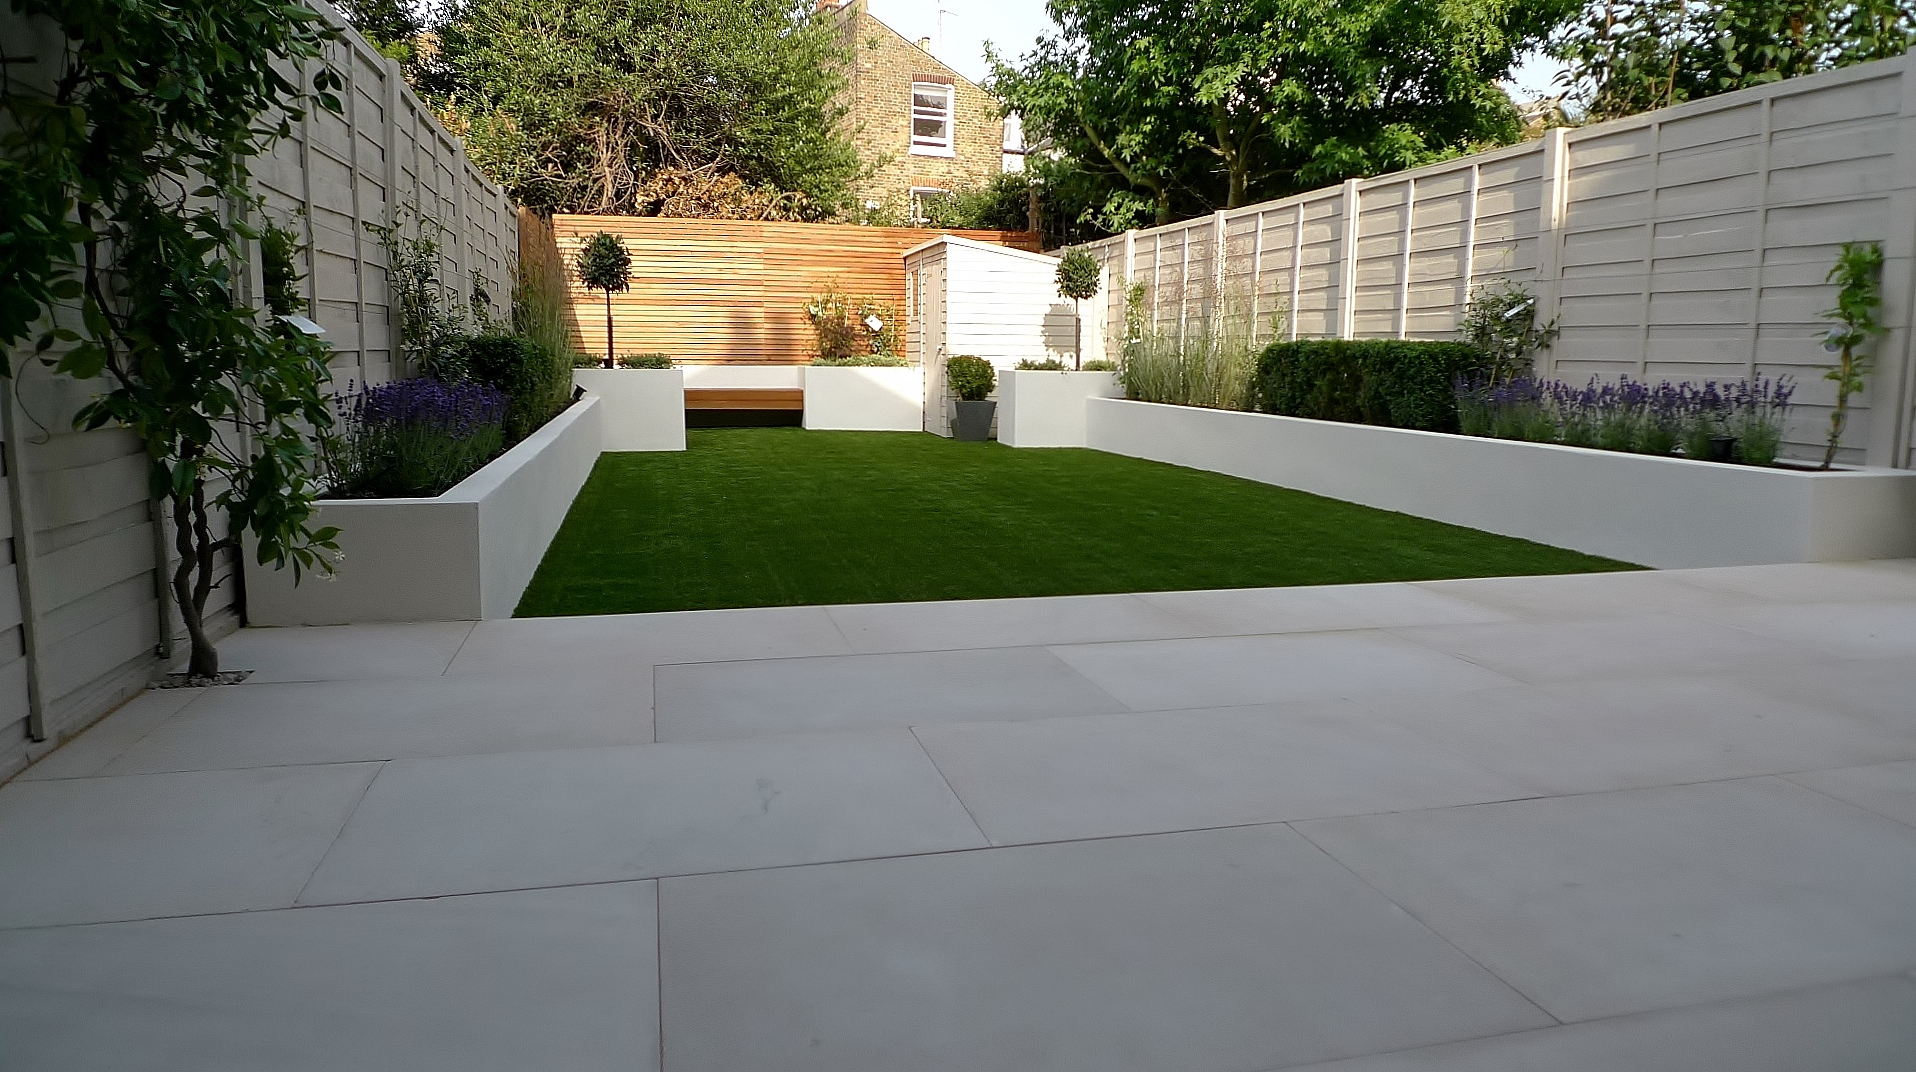 Modern balham garden design london garden design for Small modern garden design ideas